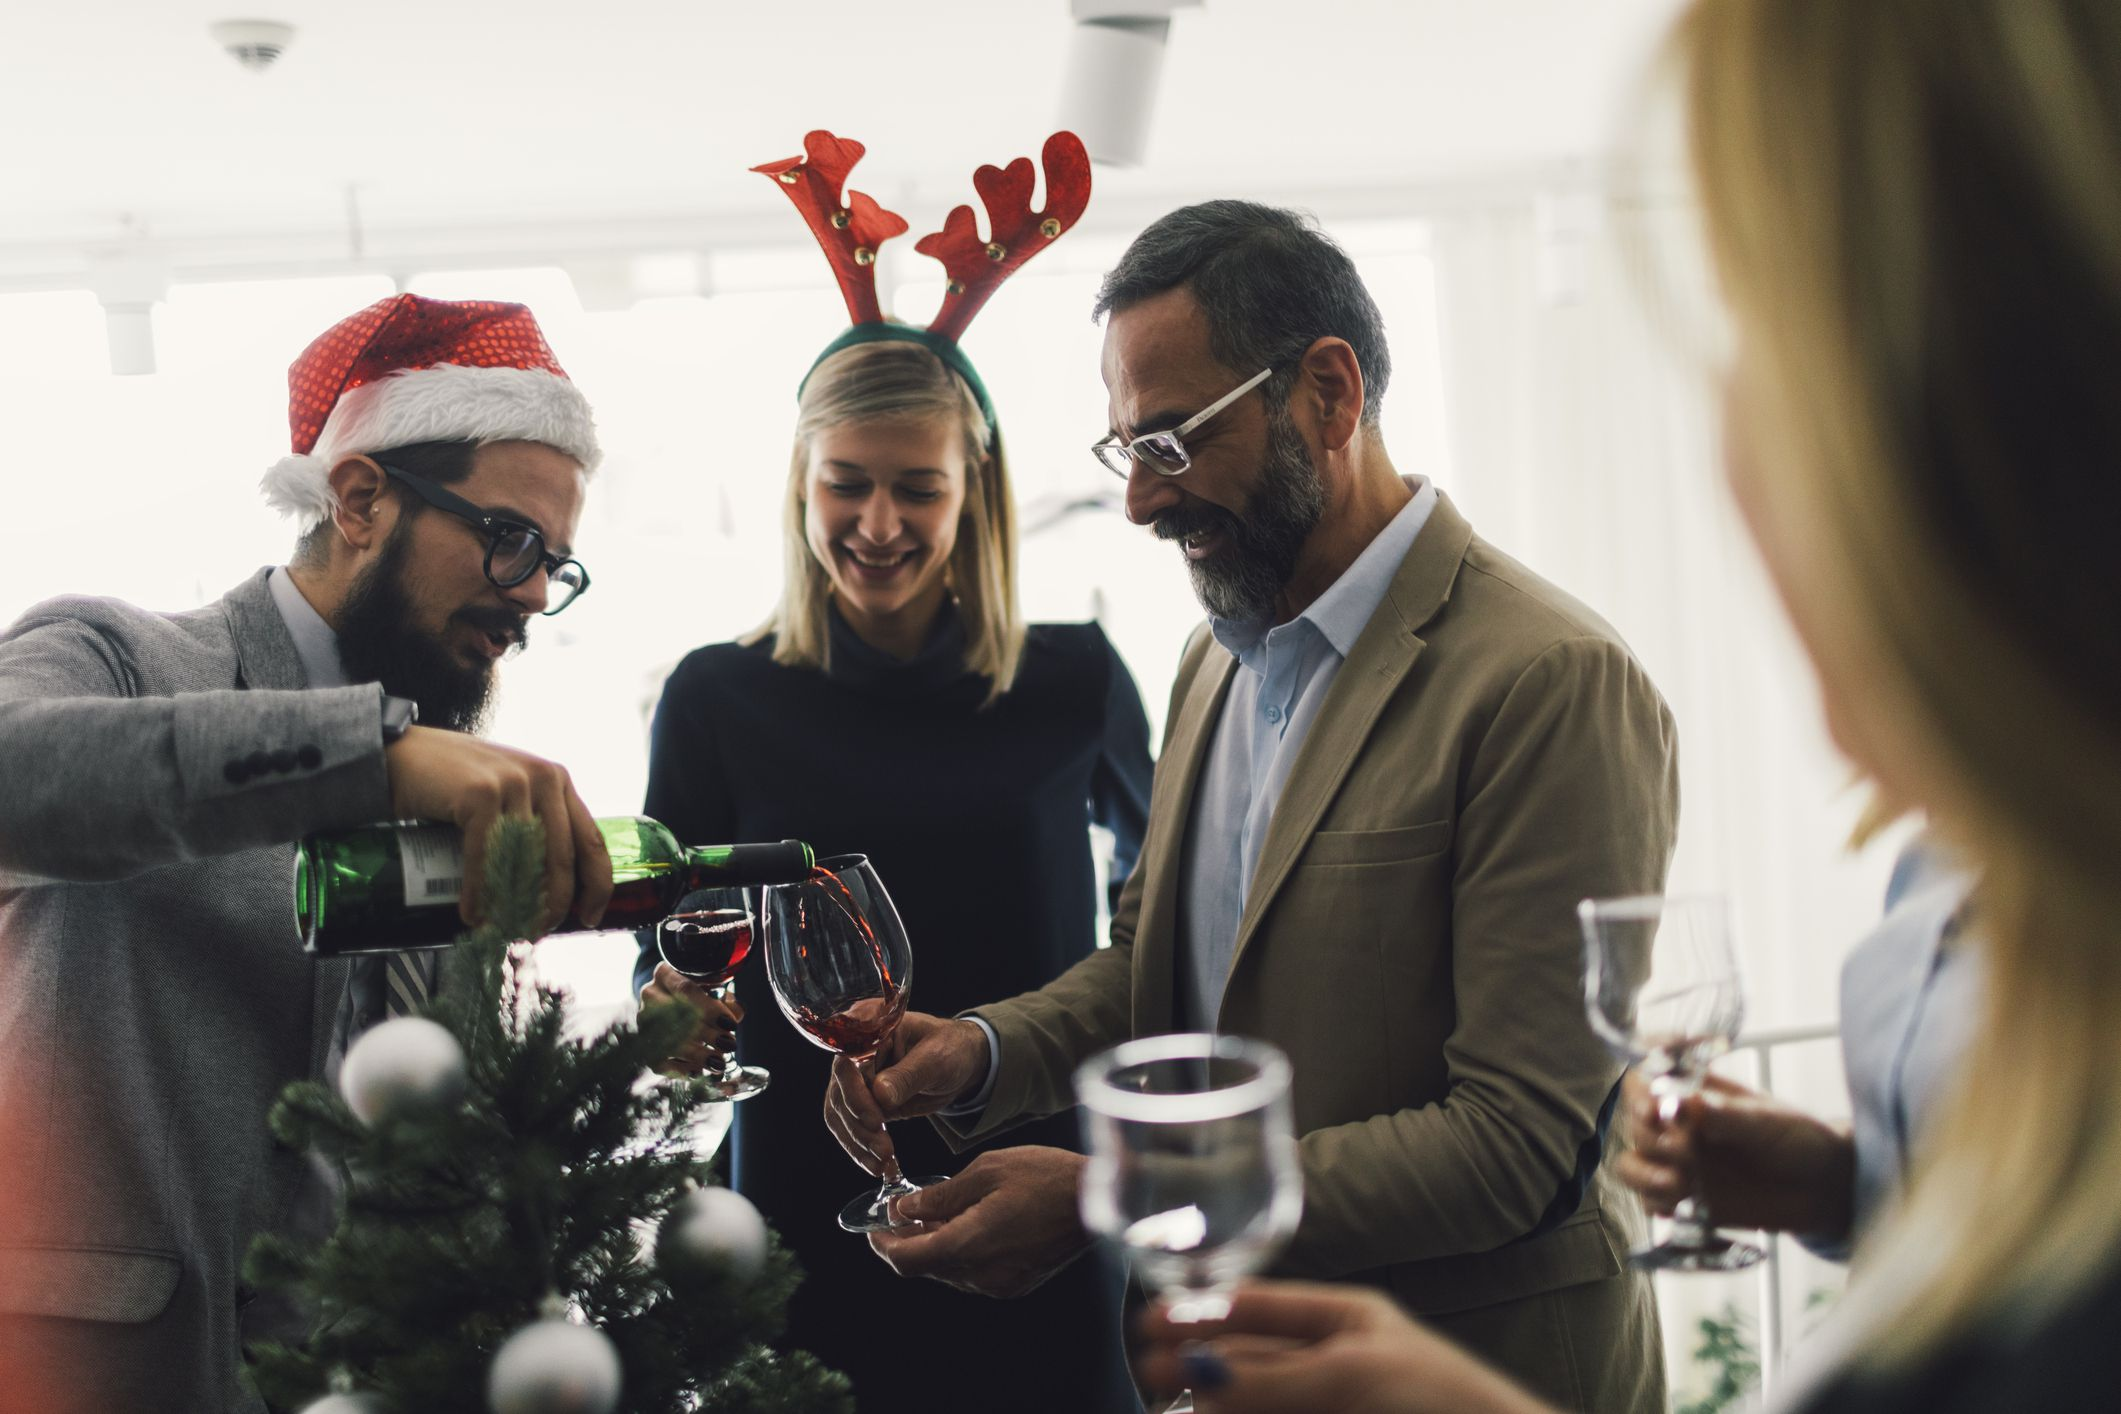 c26c1f1d6a4c1 10 Office Party Etiquette Tips for the Holidays